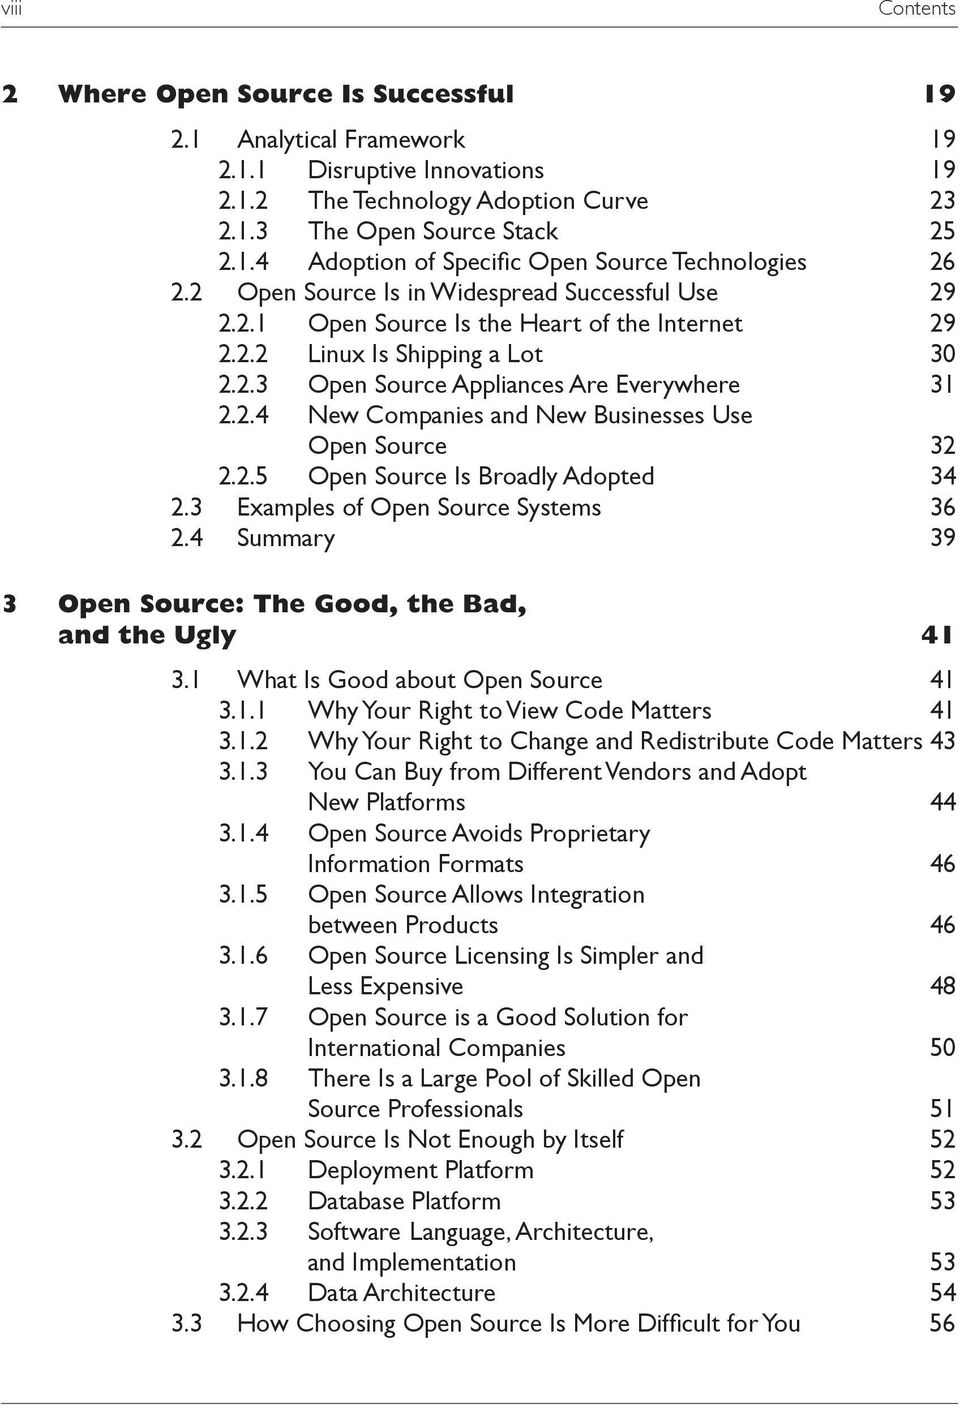 2.5 Open Source Is Broadly Adopted 34 2.3 Examples of Open Source Systems 36 2.4 Summary 39 3 Open Source: The Good, the Bad, and the Ugly 41 3.1 What Is Good about Open Source 41 3.1.1 Why Your Right to View Code Matters 41 3.